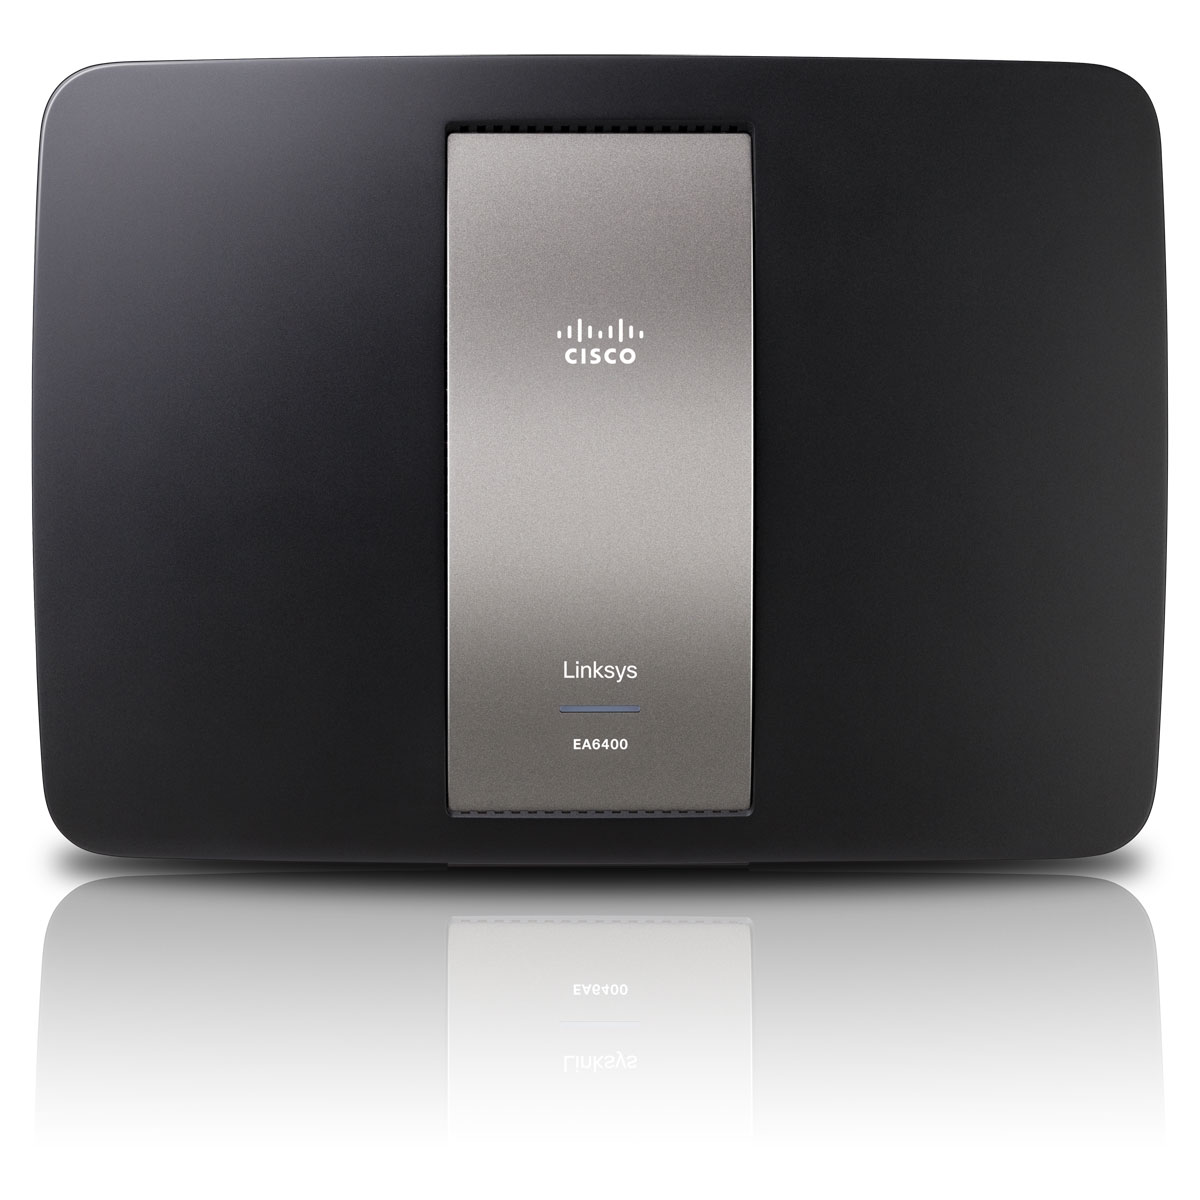 linksys ea6400 modem routeur linksys sur. Black Bedroom Furniture Sets. Home Design Ideas